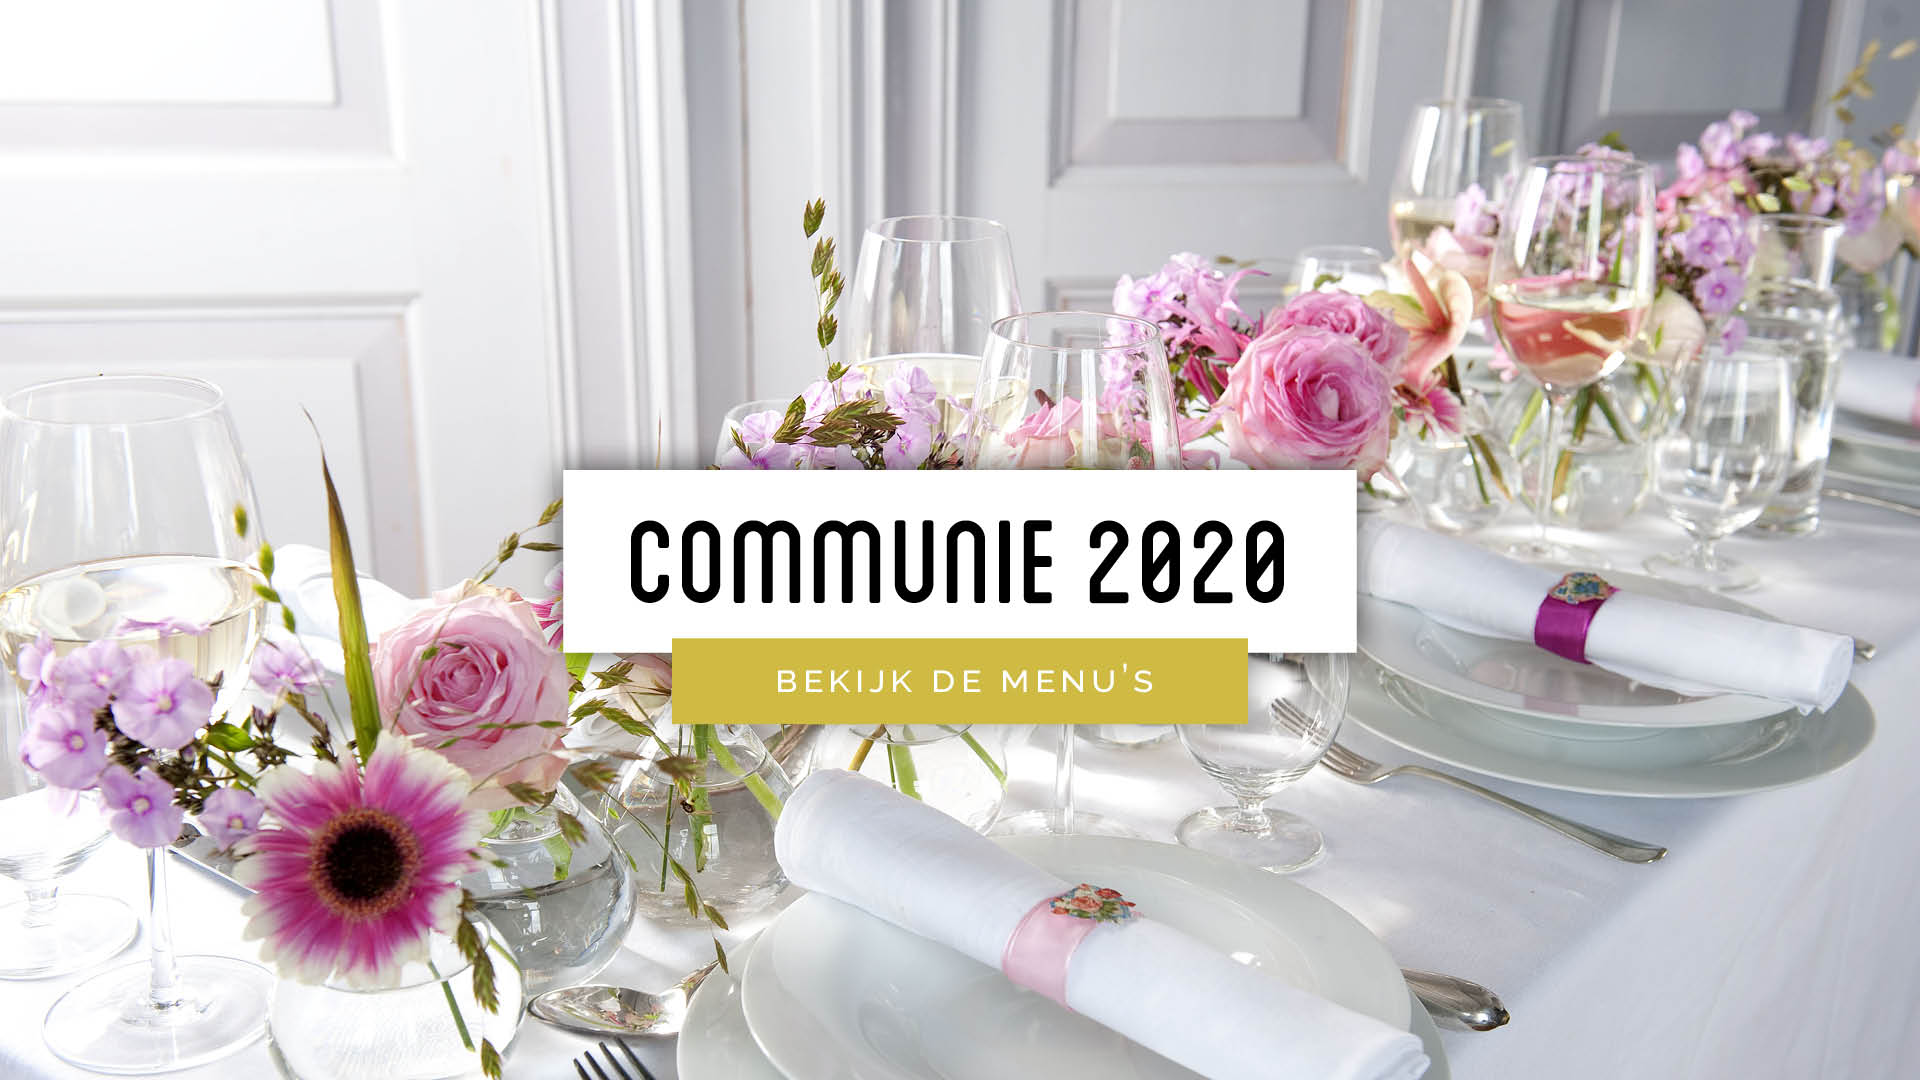 Traiteur Vincent Communie 2020